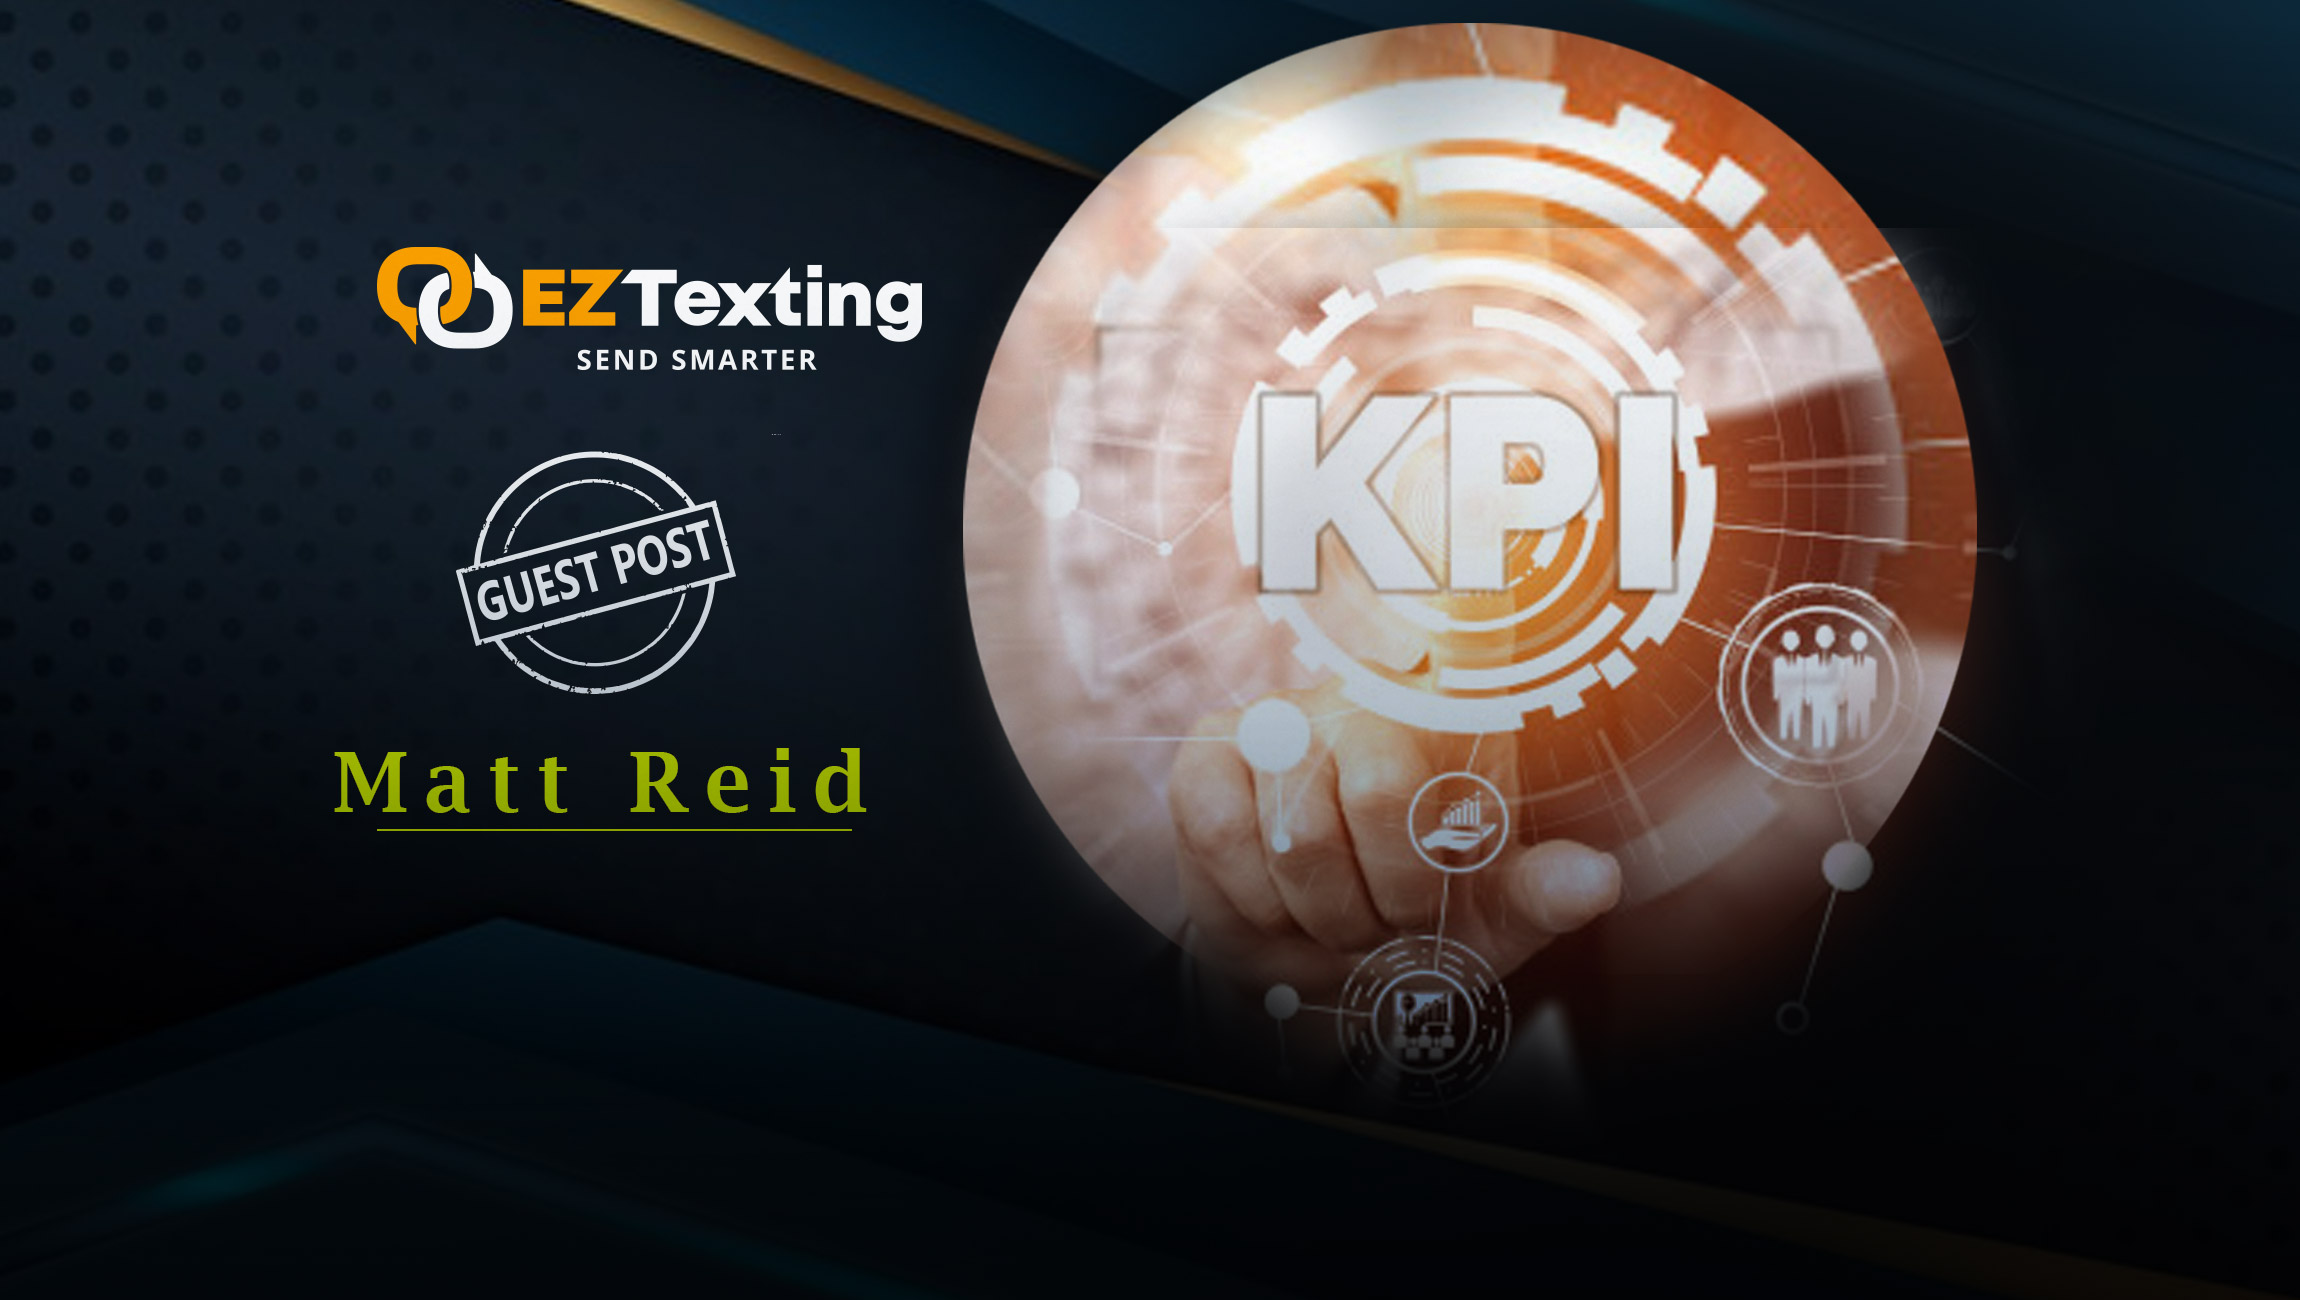 9 Marketing KPIs You Should Be Crushing The Analytics Every Business Should Monitor By Matt Reid, CMO of EZ Texting